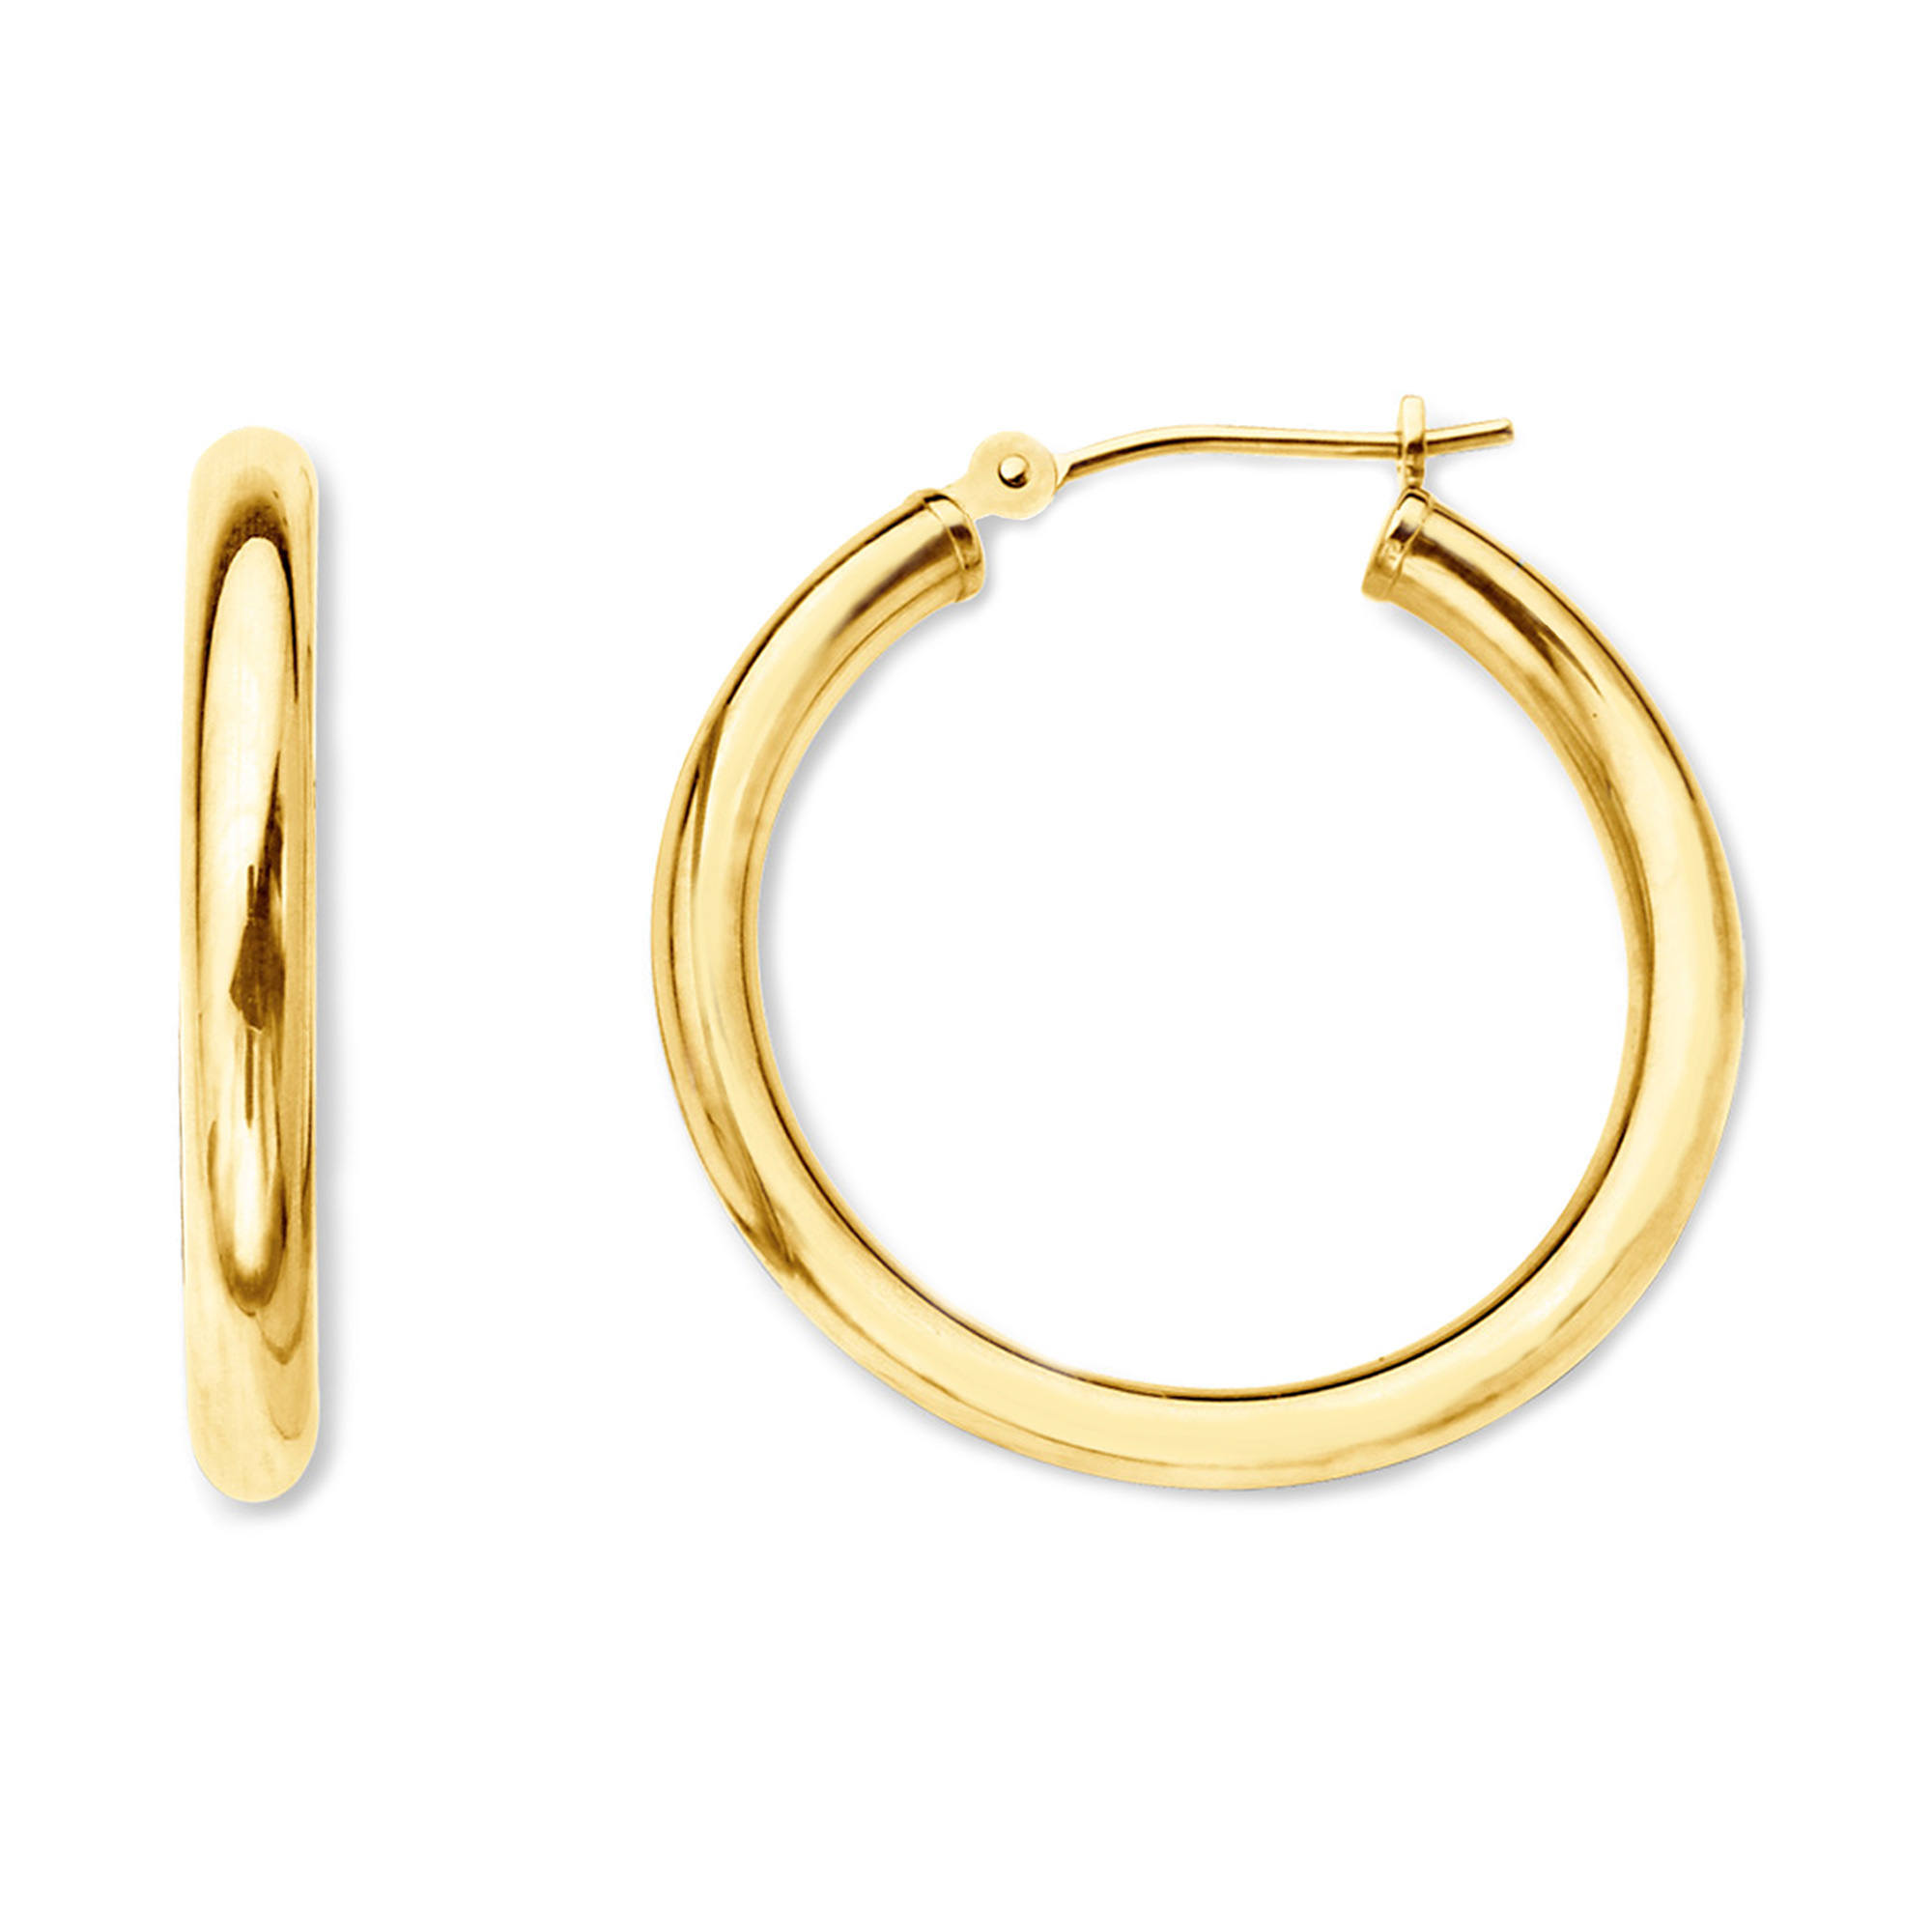 14K Yellow Gold 2MM Shiny Round Tube Hoop Earrings, 20mm Complete your jewelry collection with a gorgeous pair of 14K gold hoop earrings. Whether you prefer large bohemian look or tiny orbs, you'll discover plenty of sizes to match your style. These earrings have a secure snap post clasp making them easy to wear and remove. Earrings come in a  gift box making them ready to be gifted.